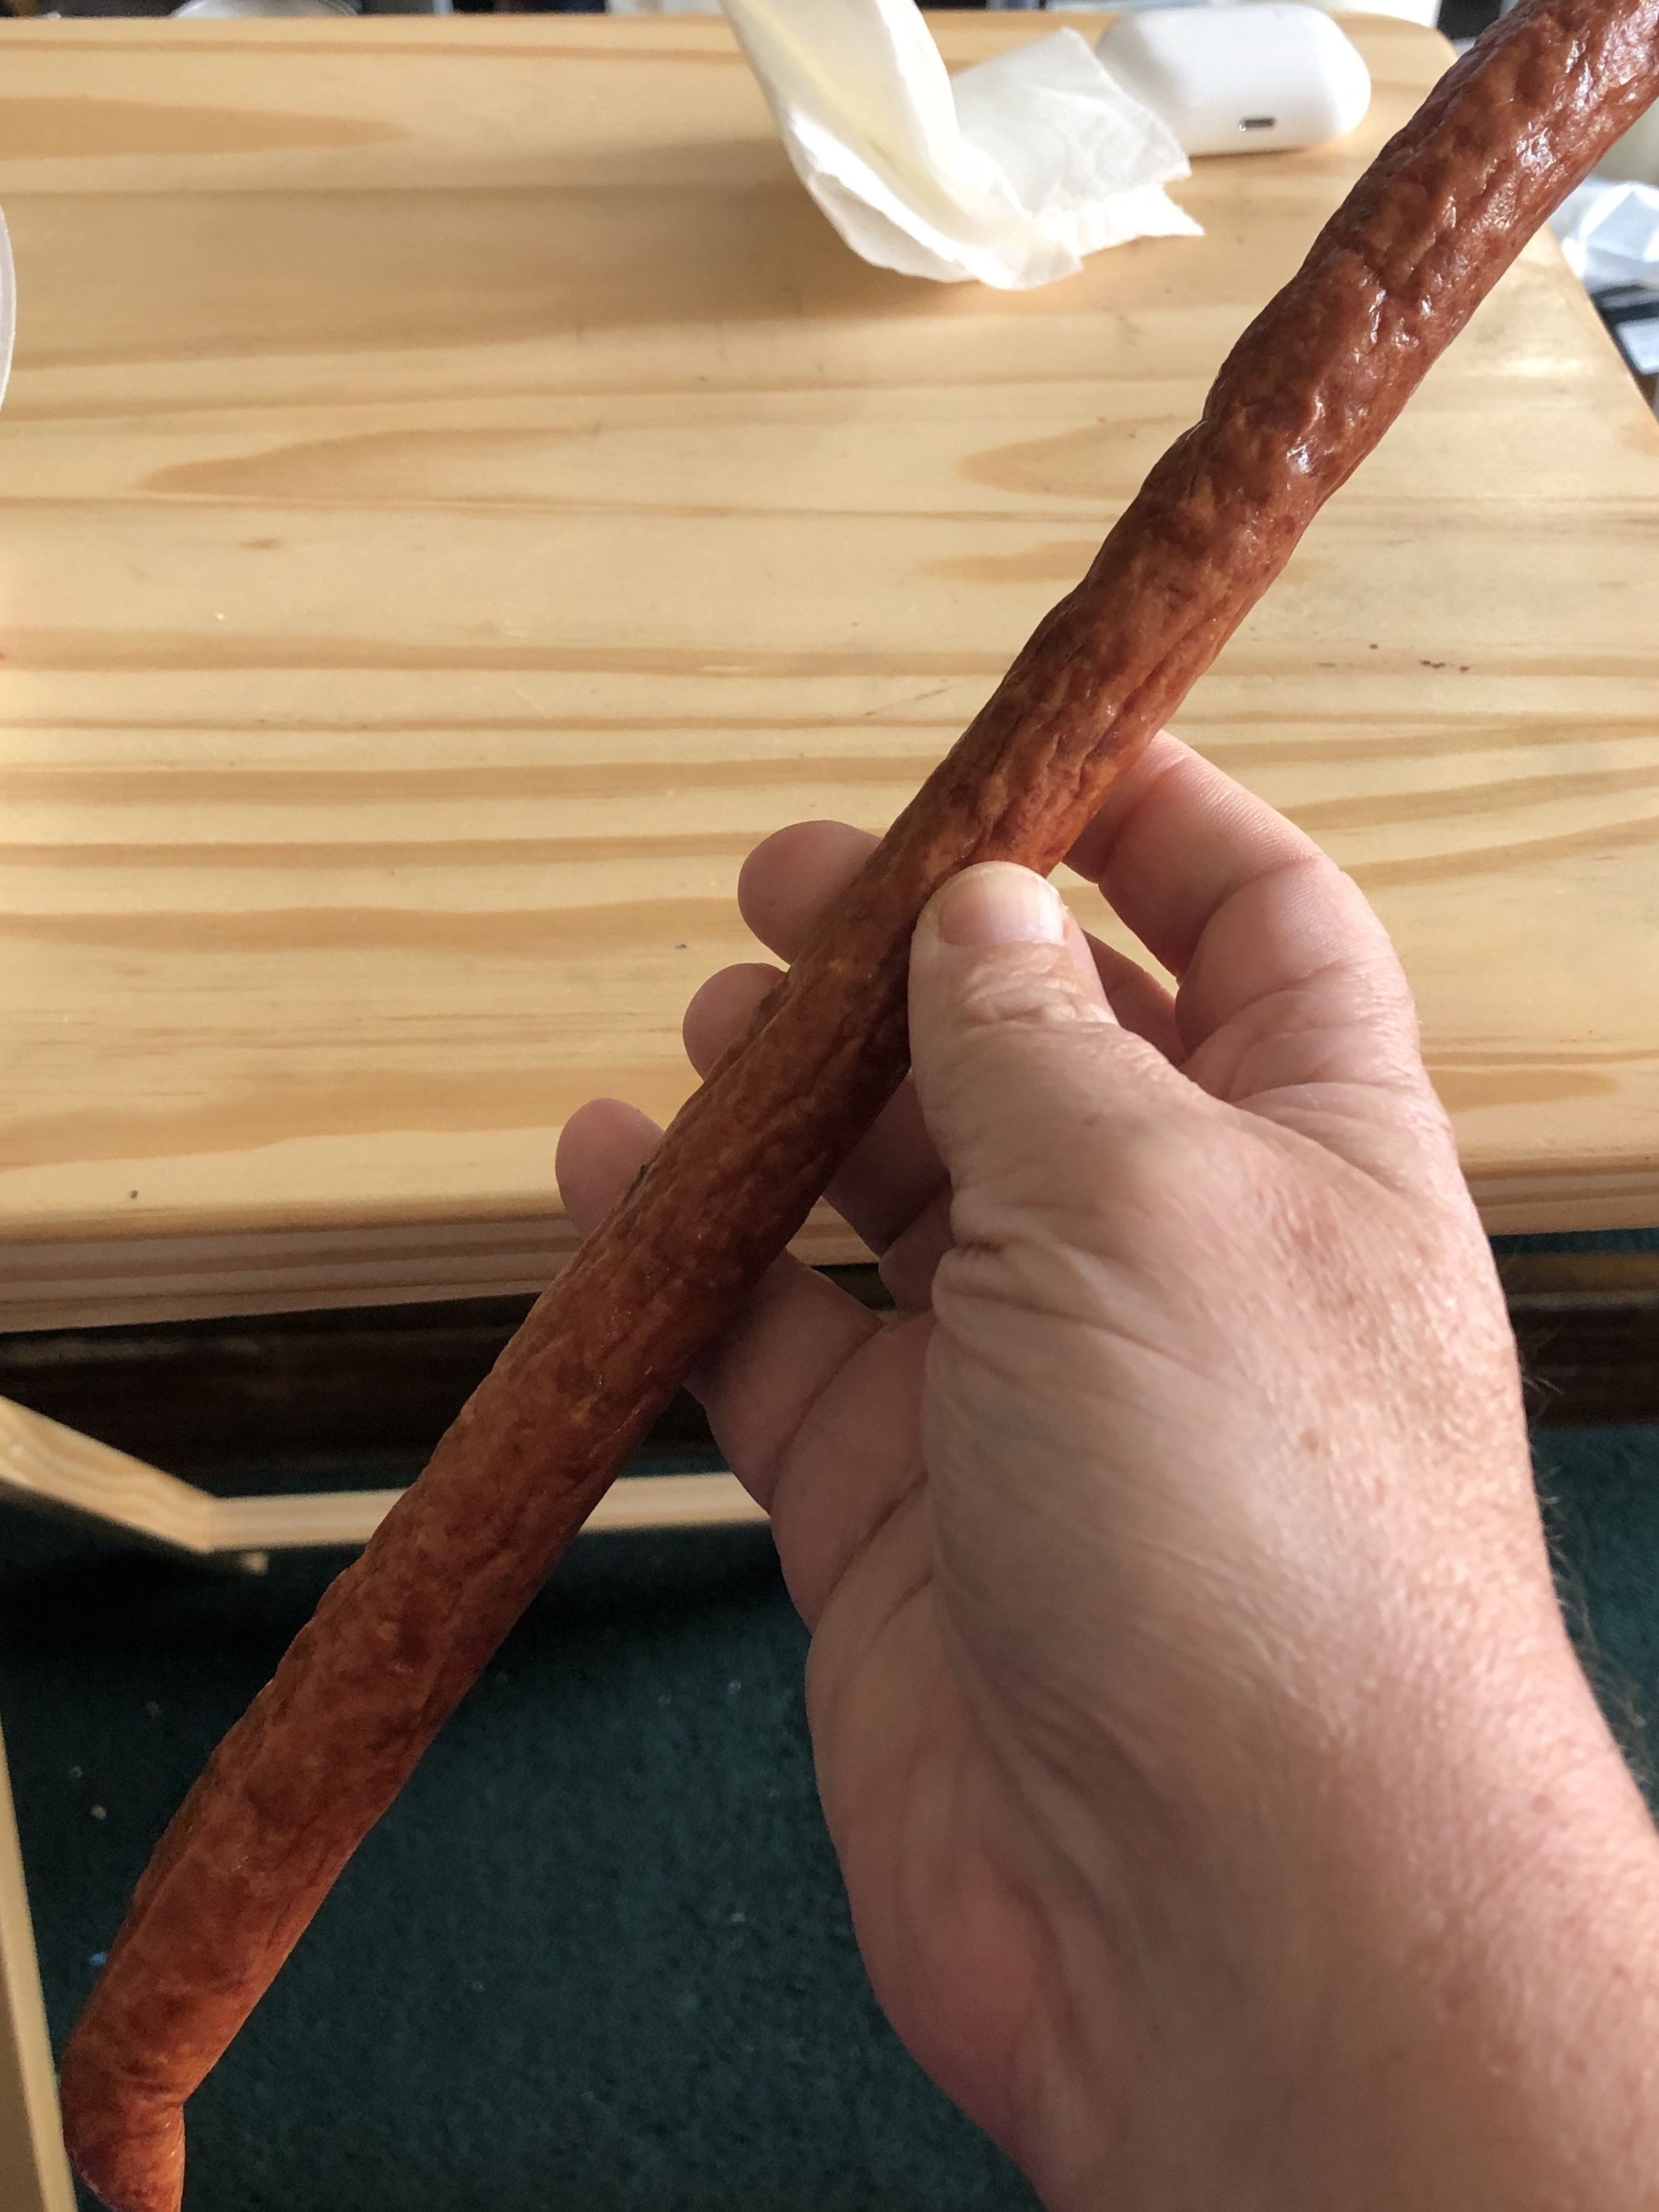 Costco Meat Stick